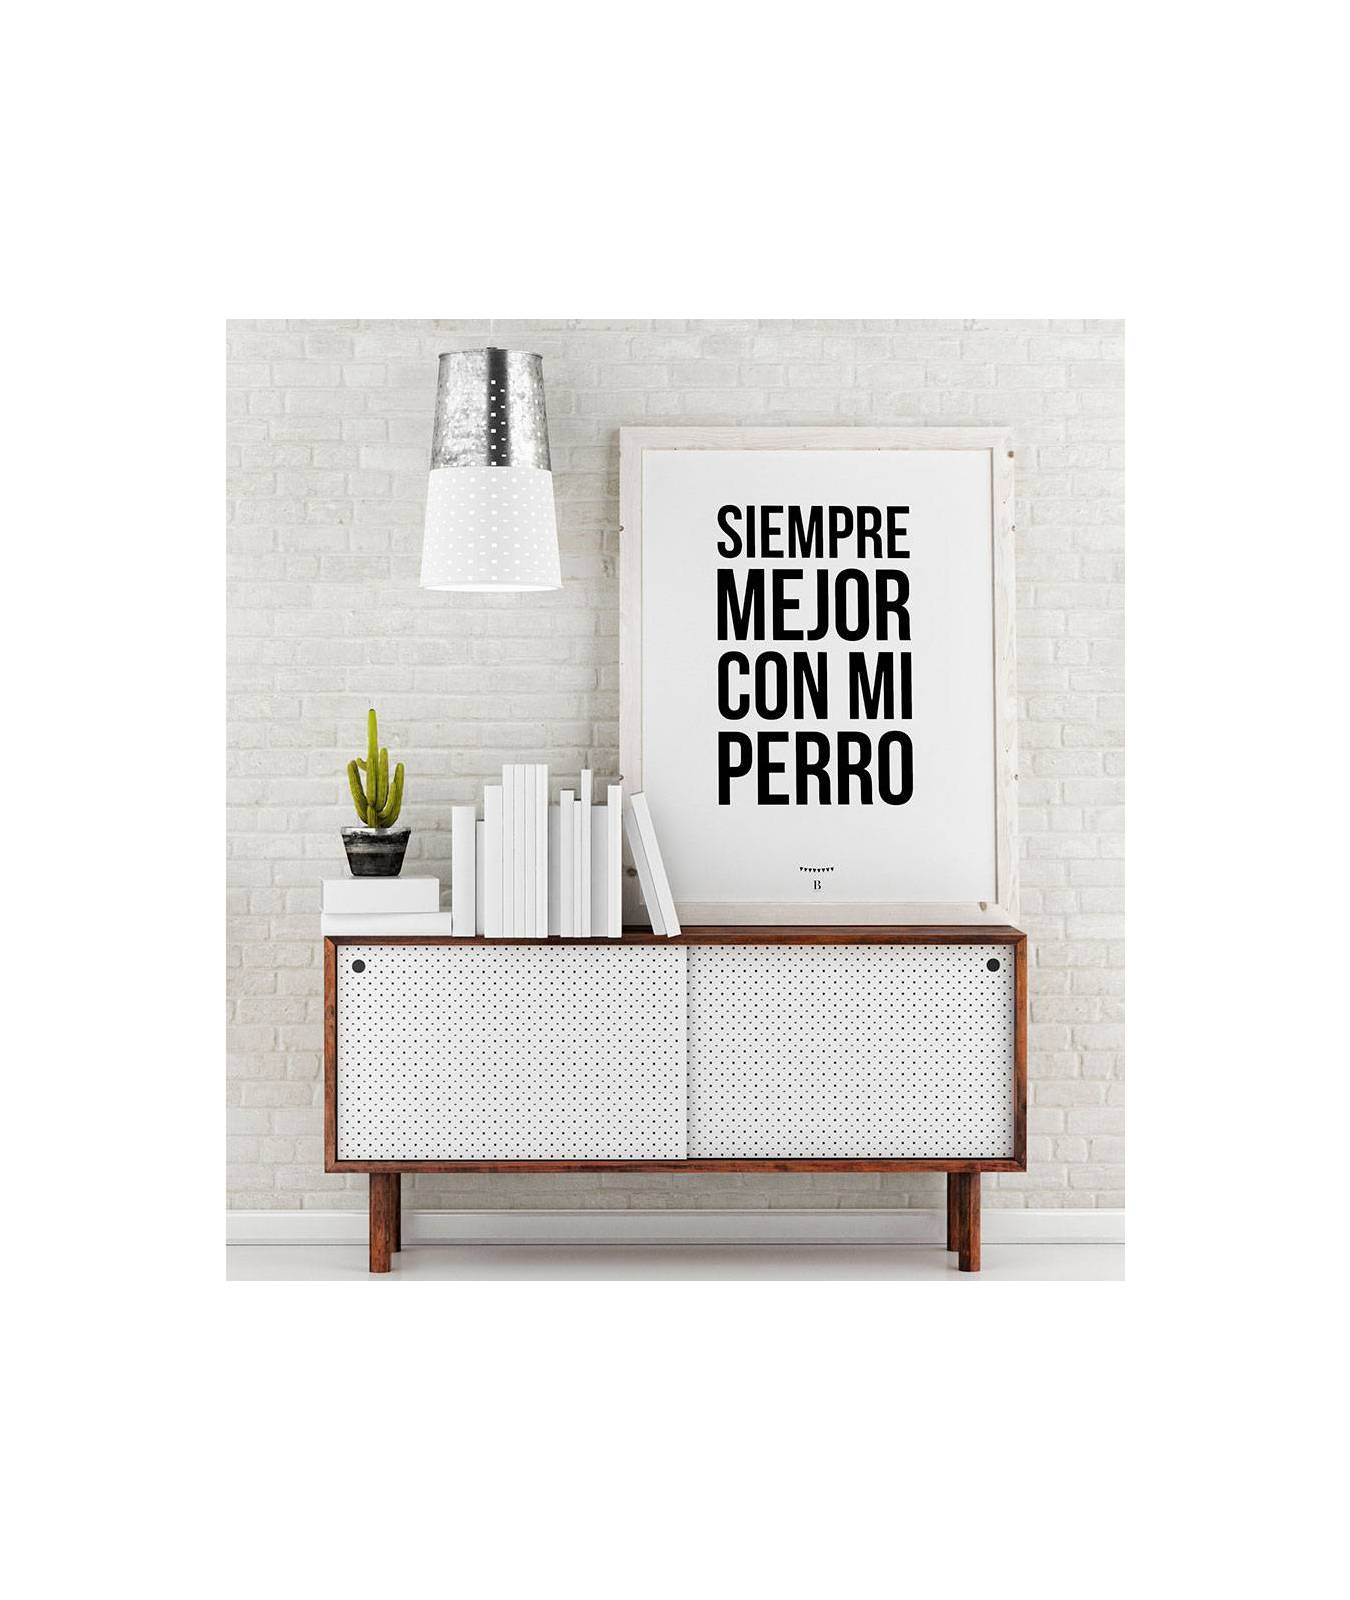 L mina decorativa brott barcelona always better with my dog para dog lovers - Laminas decorativas para pared ...